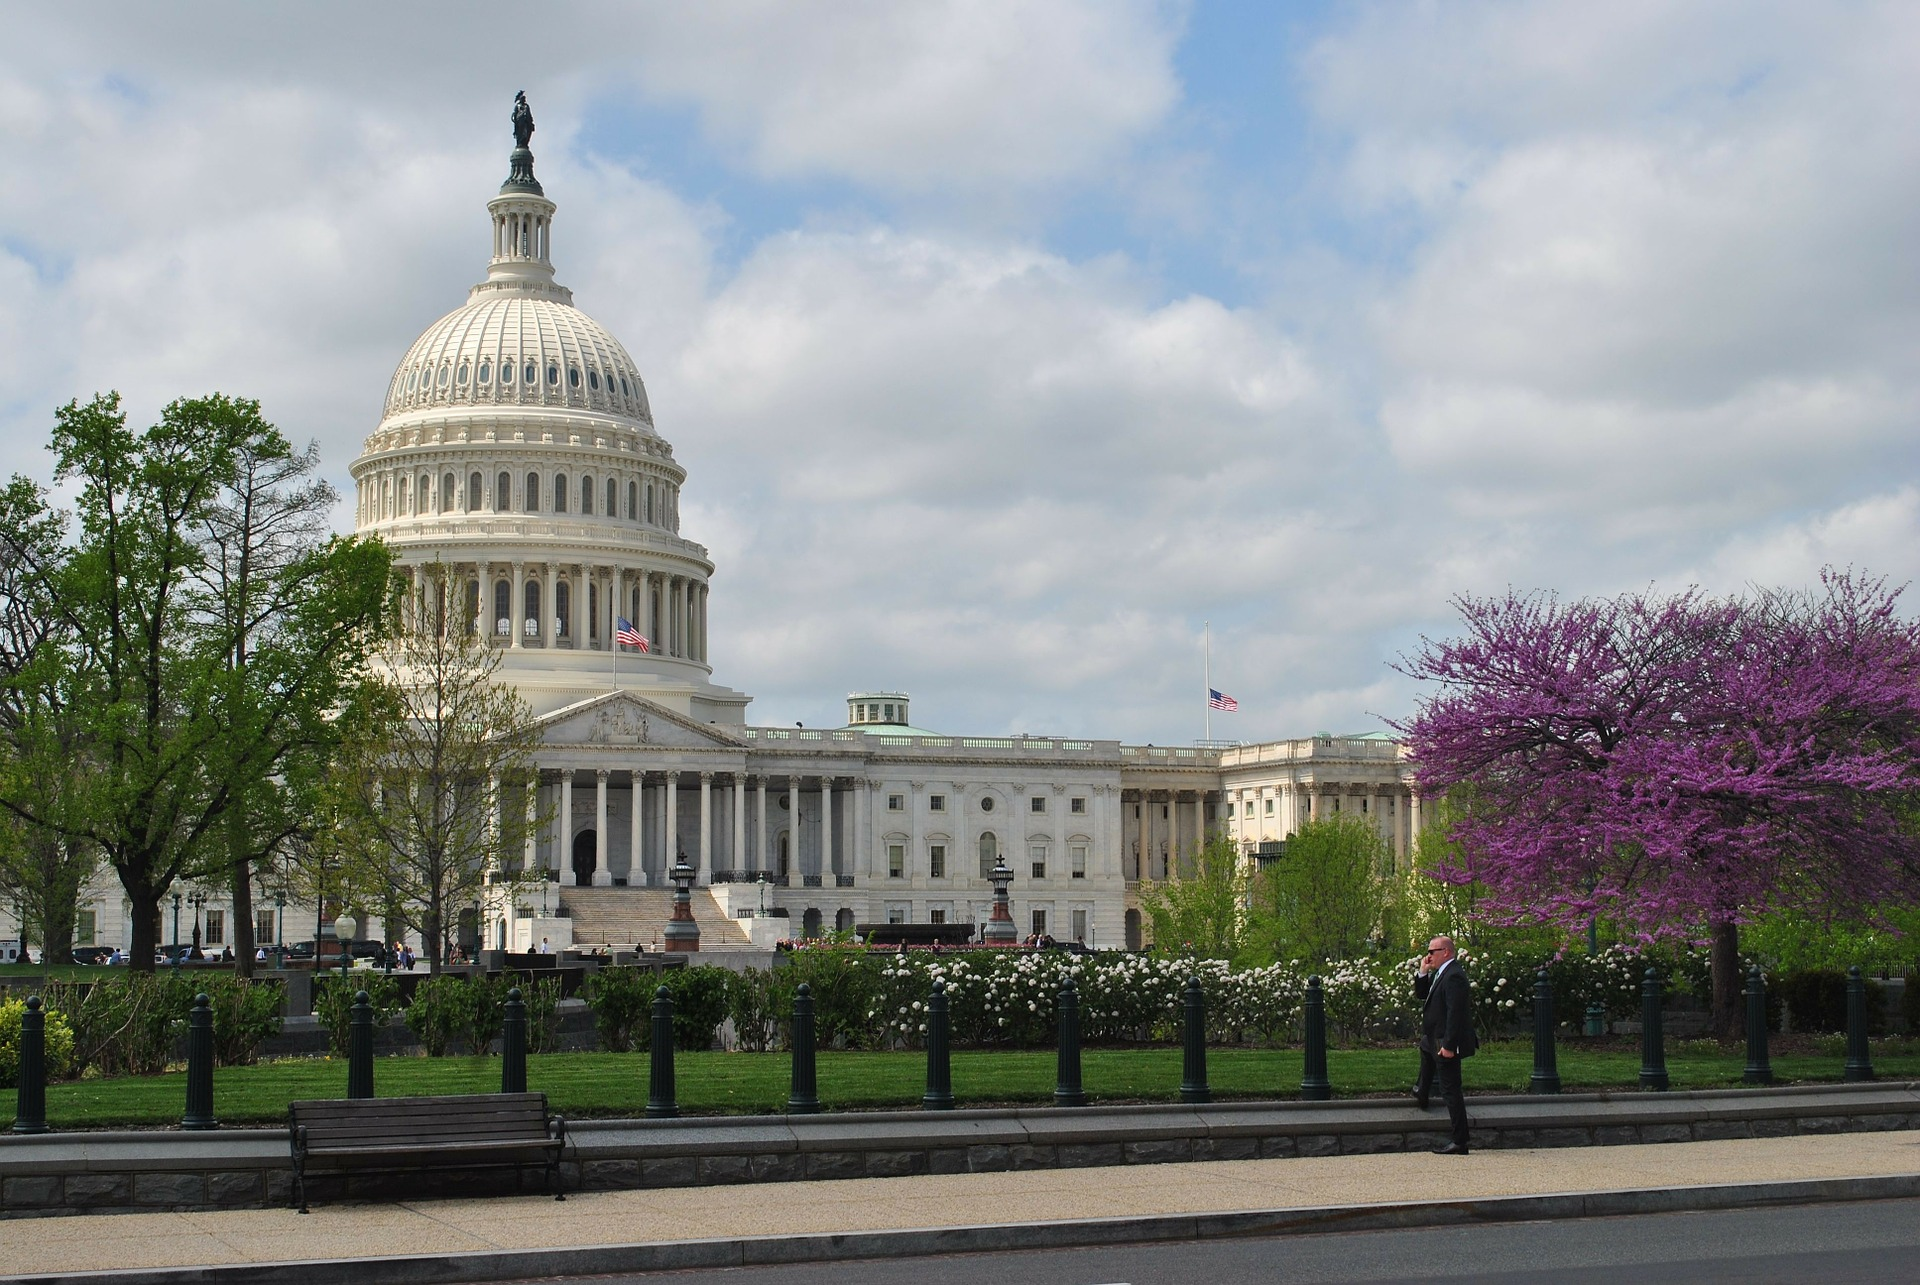 Washington Winding Down For August Recess